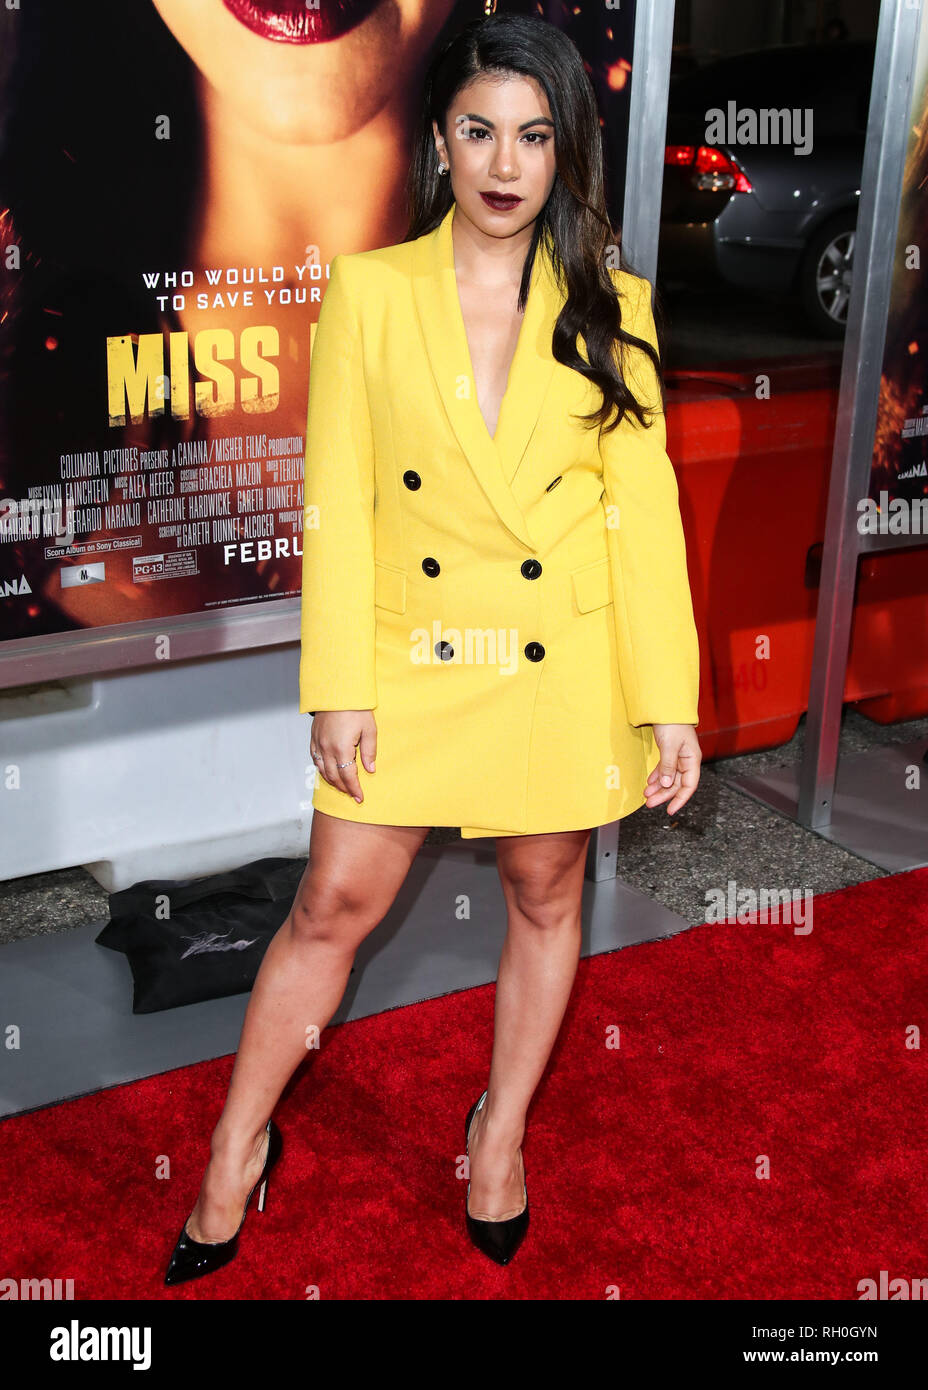 Los Angeles, California, USA. 30th January, 2019. Actress Chrissie Fit arrives at the Los Angeles Premiere Of Columbia Pictures' 'Miss Bala' held at Regal Cinemas L.A. Live Stadium 14 on January 30, 2019 in Los Angeles, California, United States. (Photo by Xavier Collin/Image Press Agency) Credit: Image Press Agency/Alamy Live News Stock Photo